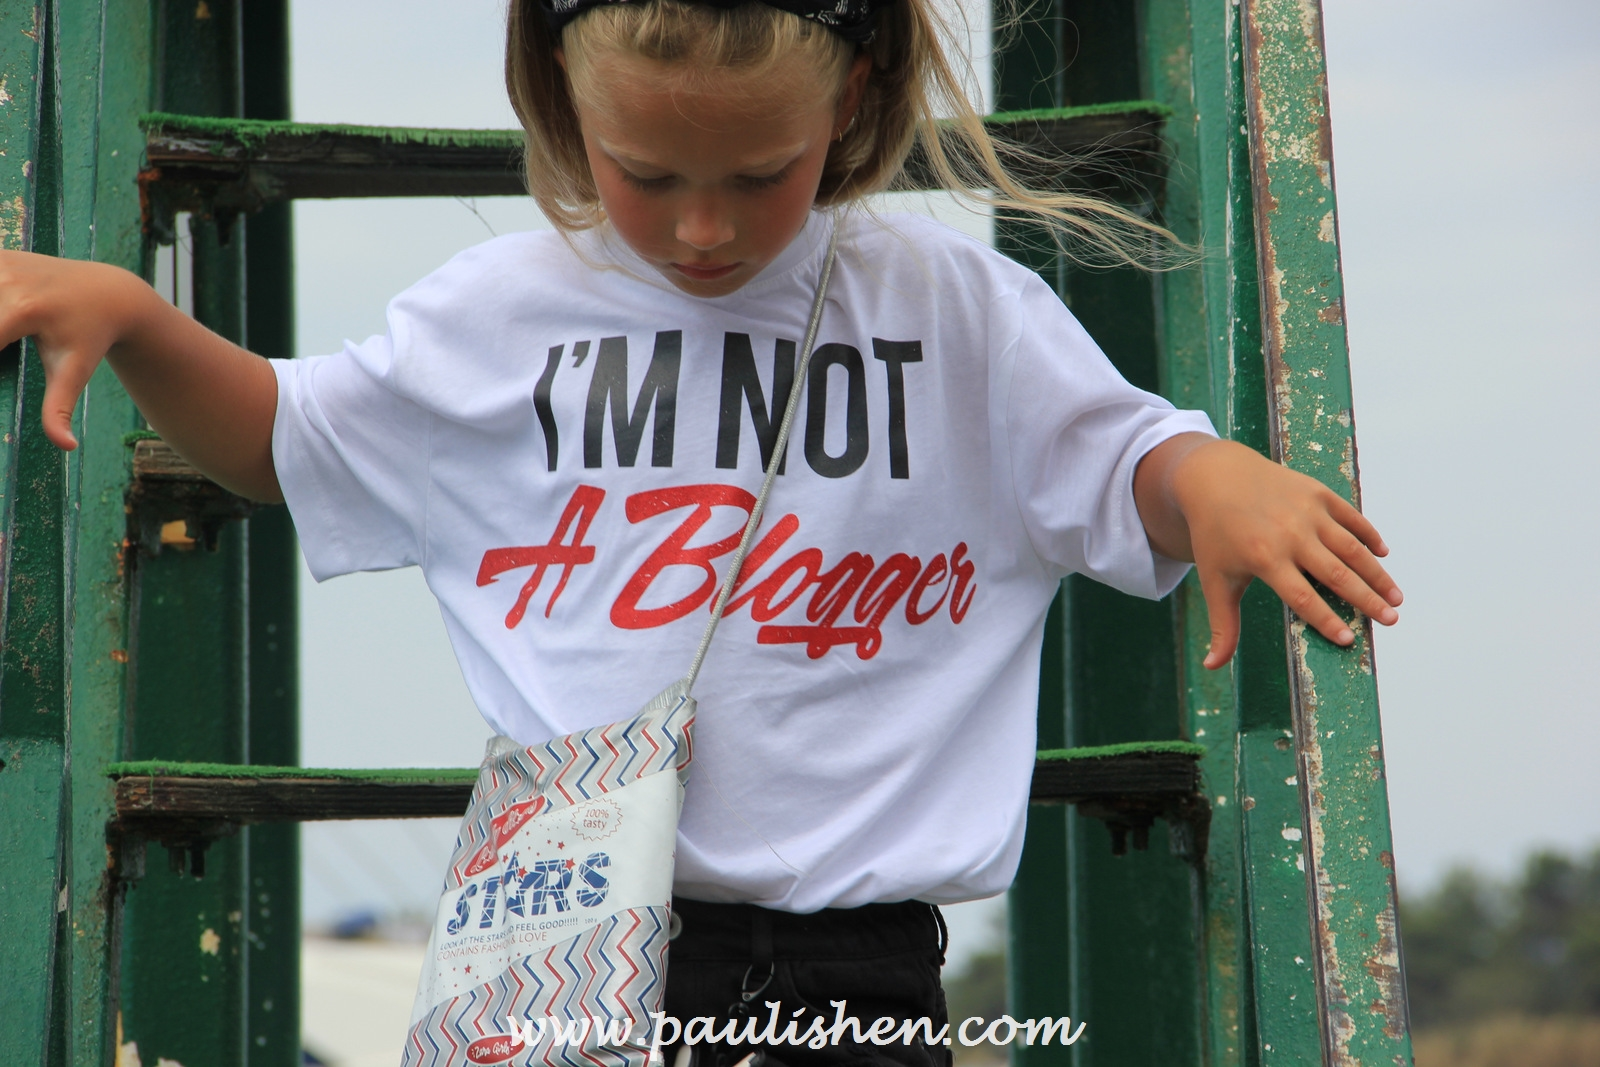 i a not a blogger